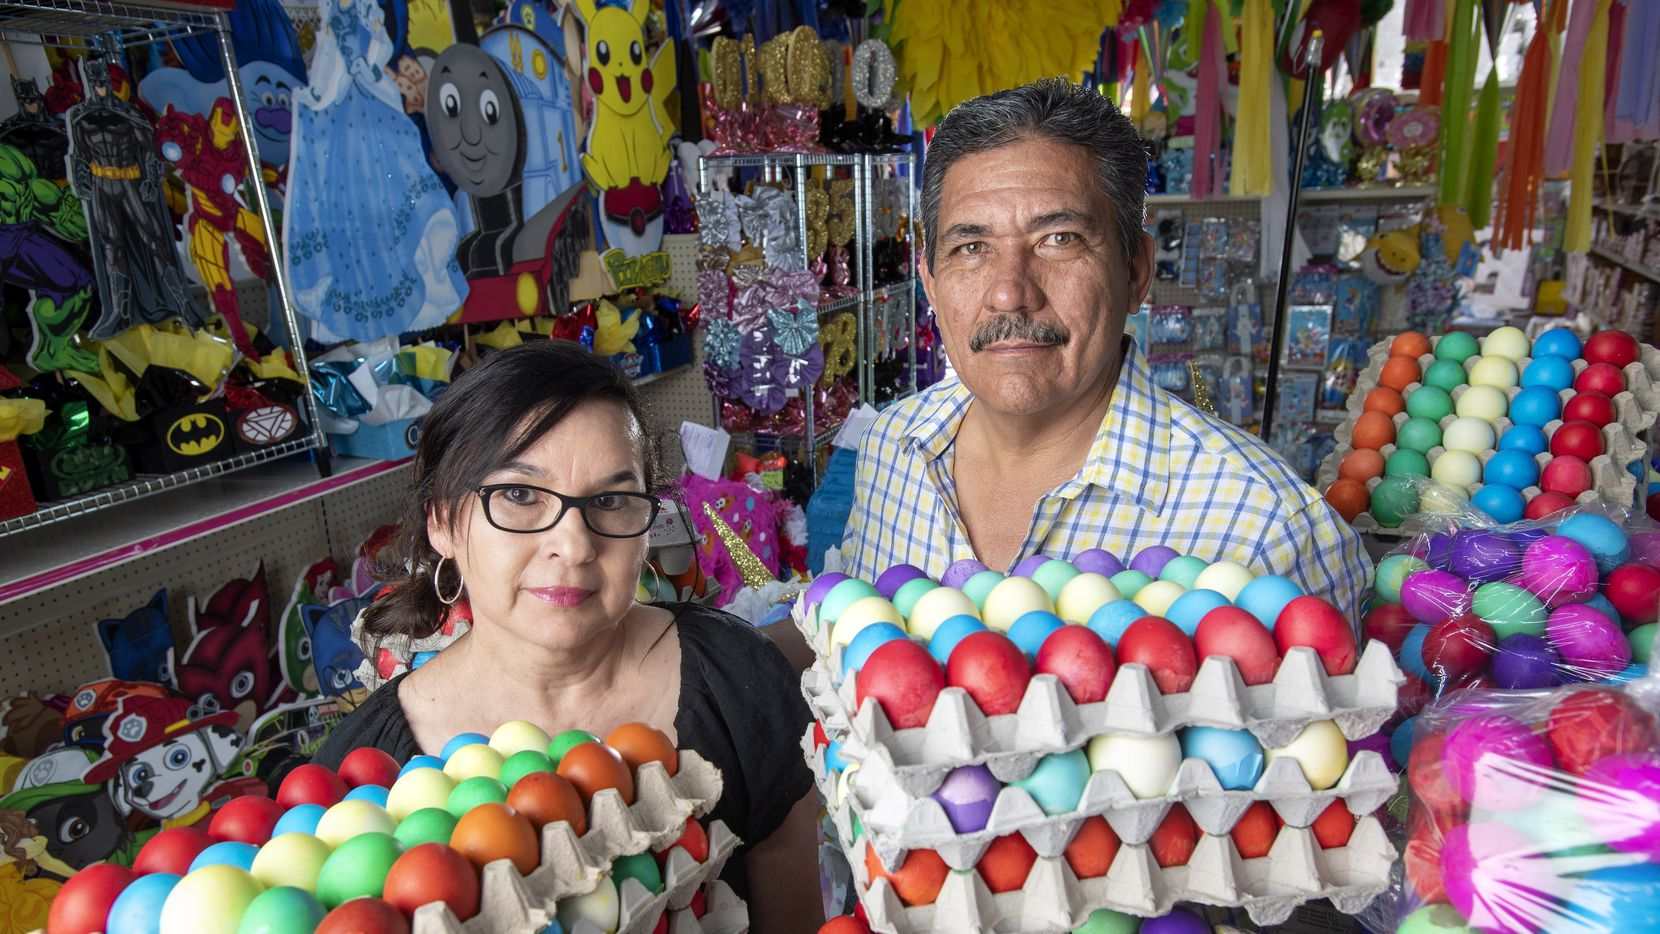 Elvie and Carlos De La Fuente, owners of ABC Party on West Davis Street in North Oak Cliff, with some of the thousands of cascarones, confetti eggs, that they contracted for and now will not be able to sell because of the coronavirus pandemic.  The couple has been in the party store business for 28 year and are anxious to reopen as soon as possible.